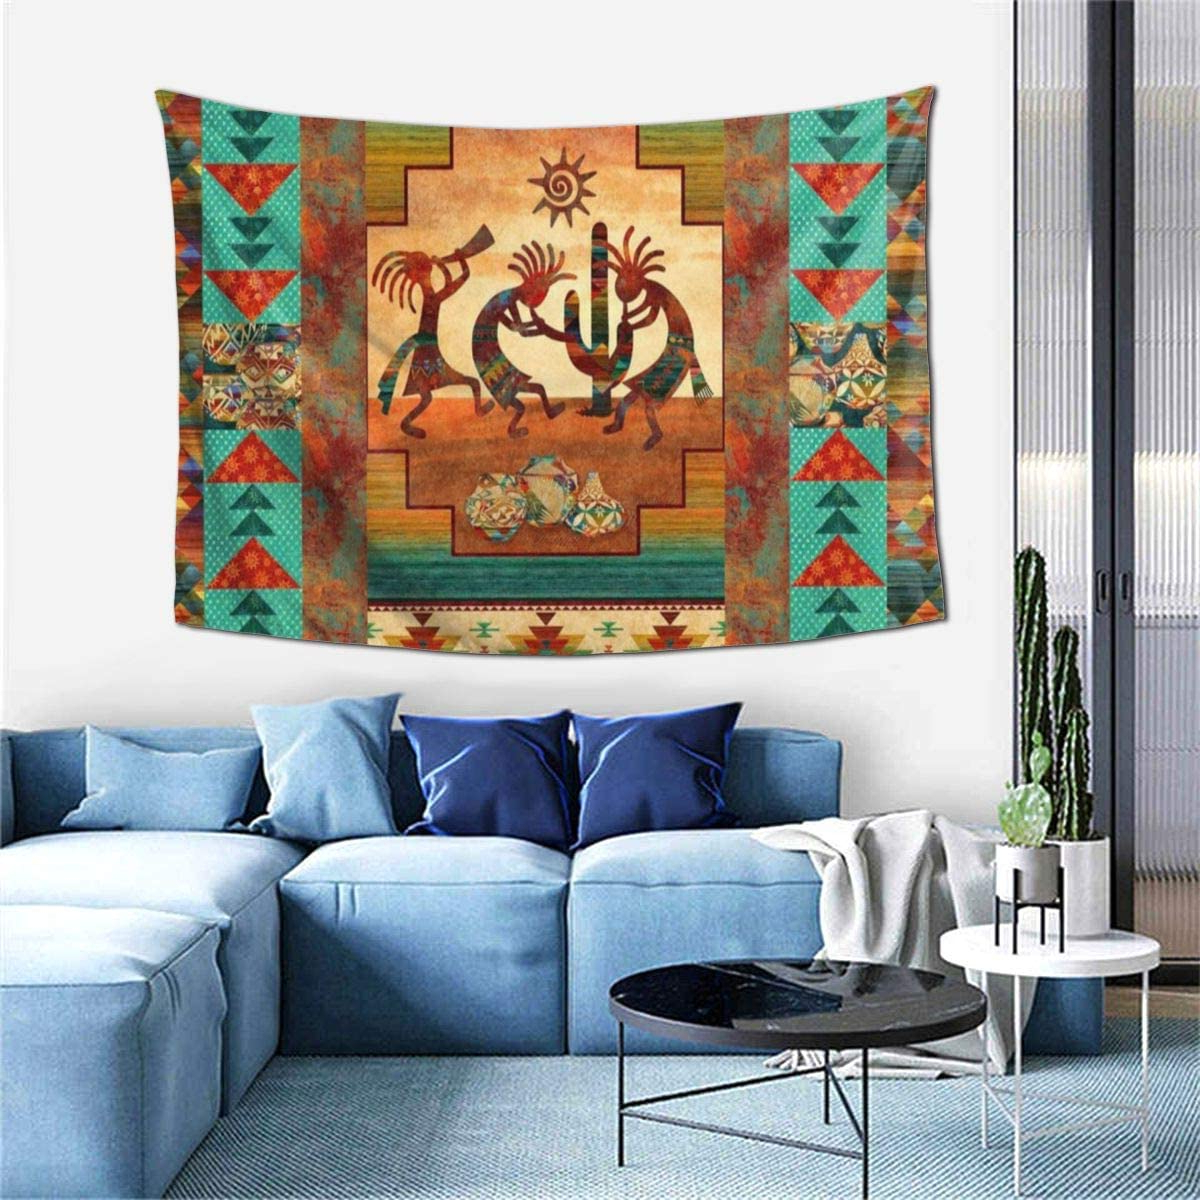 2020 Blended Fabric Southwestern Bohemian Wall Hangings Inside Msanlixian Wall Hanging Decoration Tapestries Southwest Kokopelli Native American Wall Tapestry For Dorm Living Room Bedroom Blanket Wall Art Home (View 4 of 20)